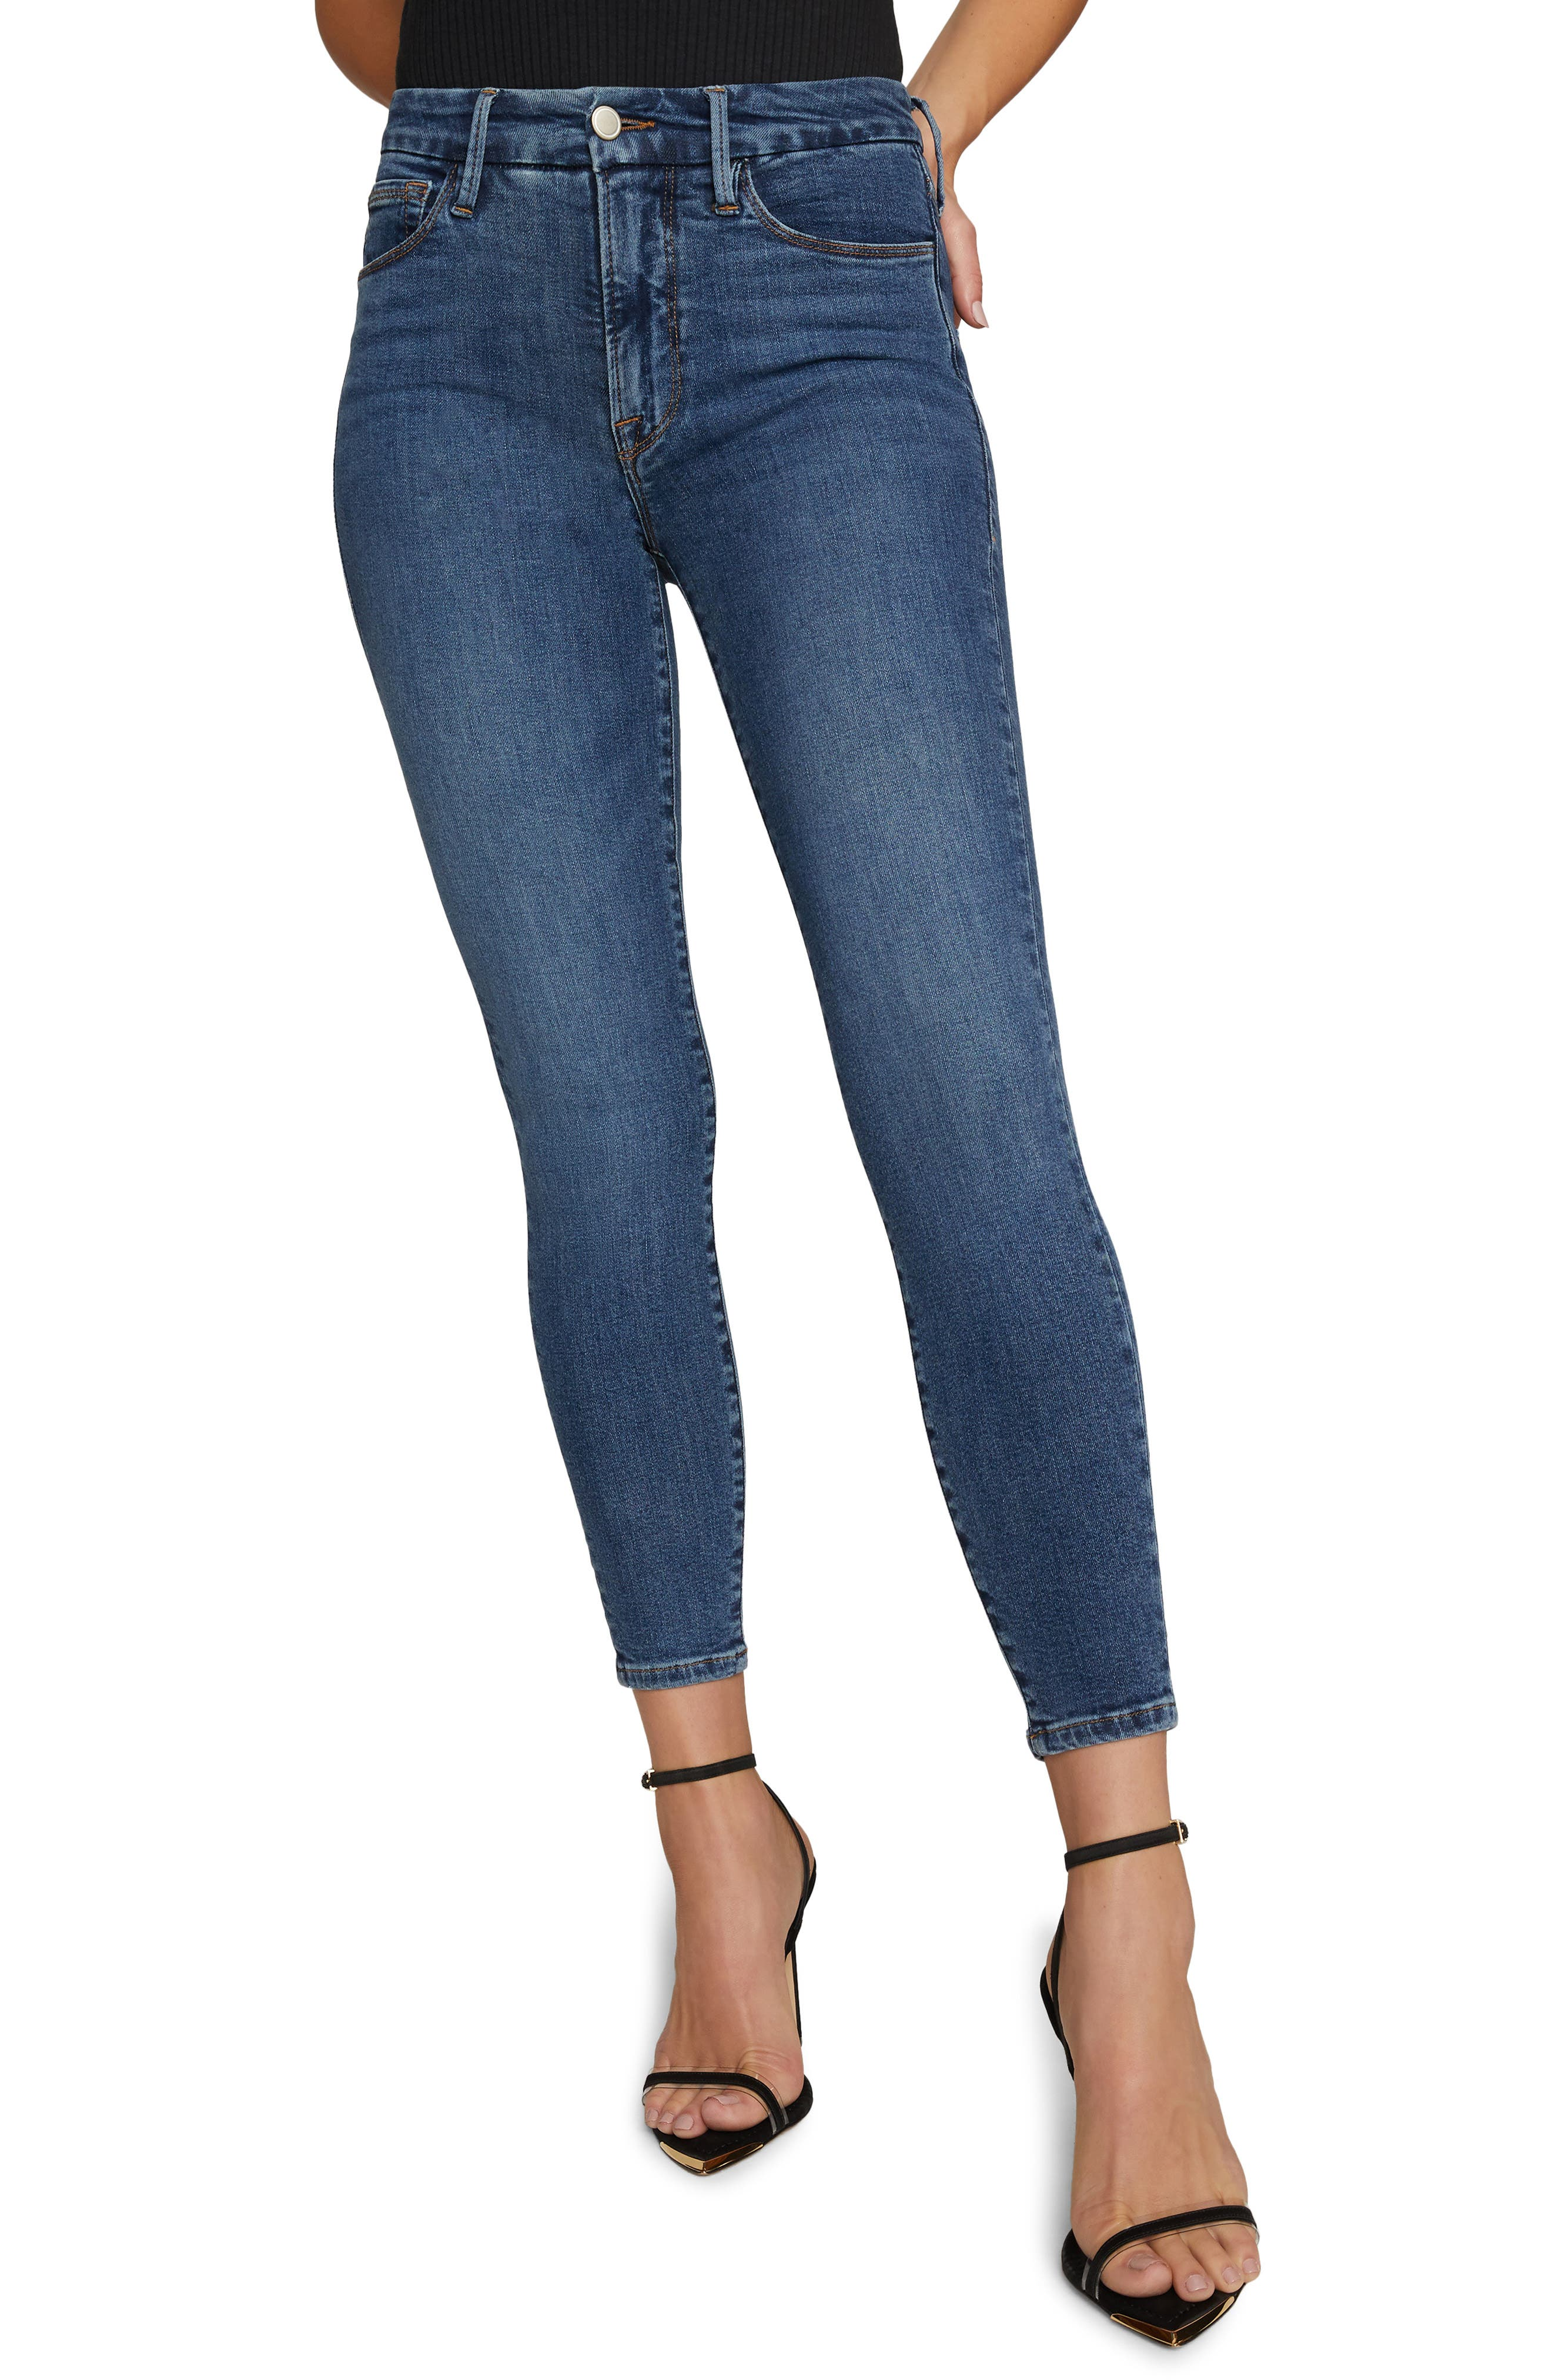 Women's Good American Extreme V High Waist Ankle Skinny Jeans